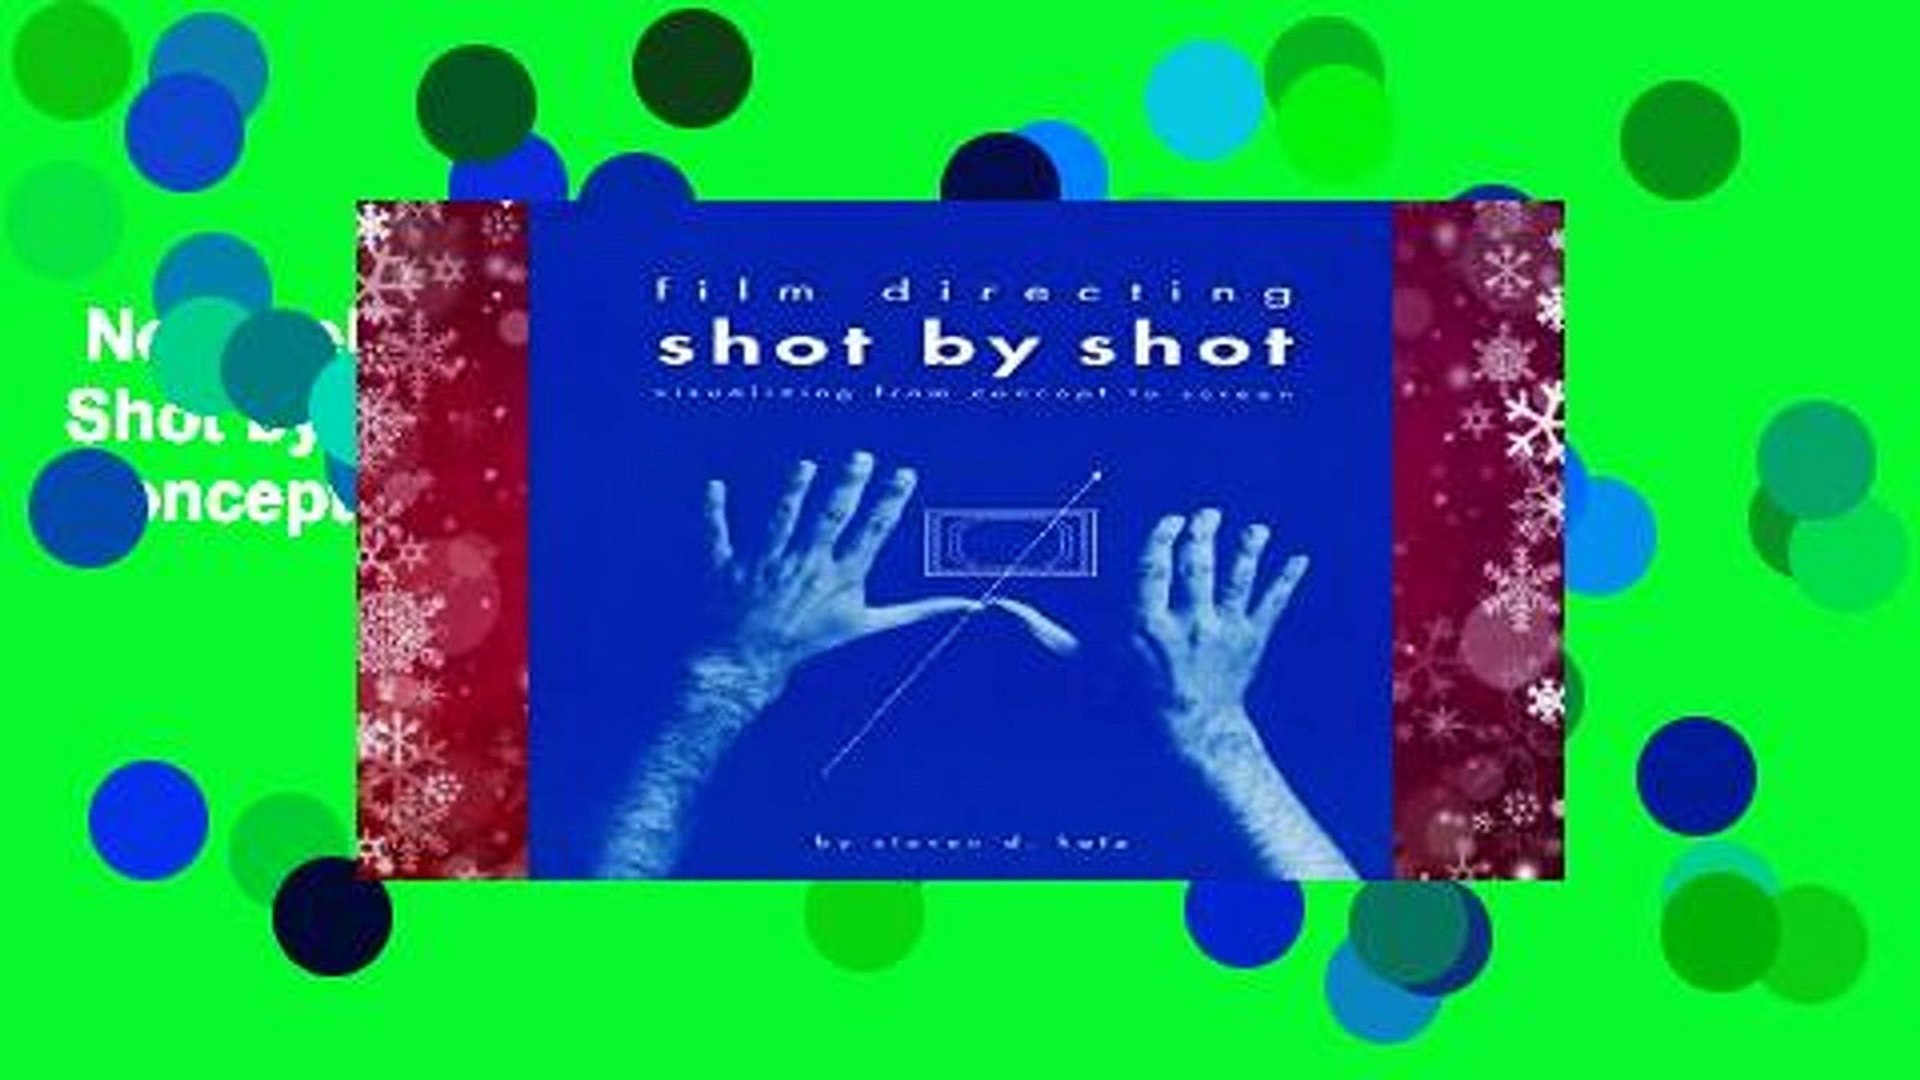 New Releases Film Directing Shot by Shot: Visualizing from Concept to Screen (Michael Wiese